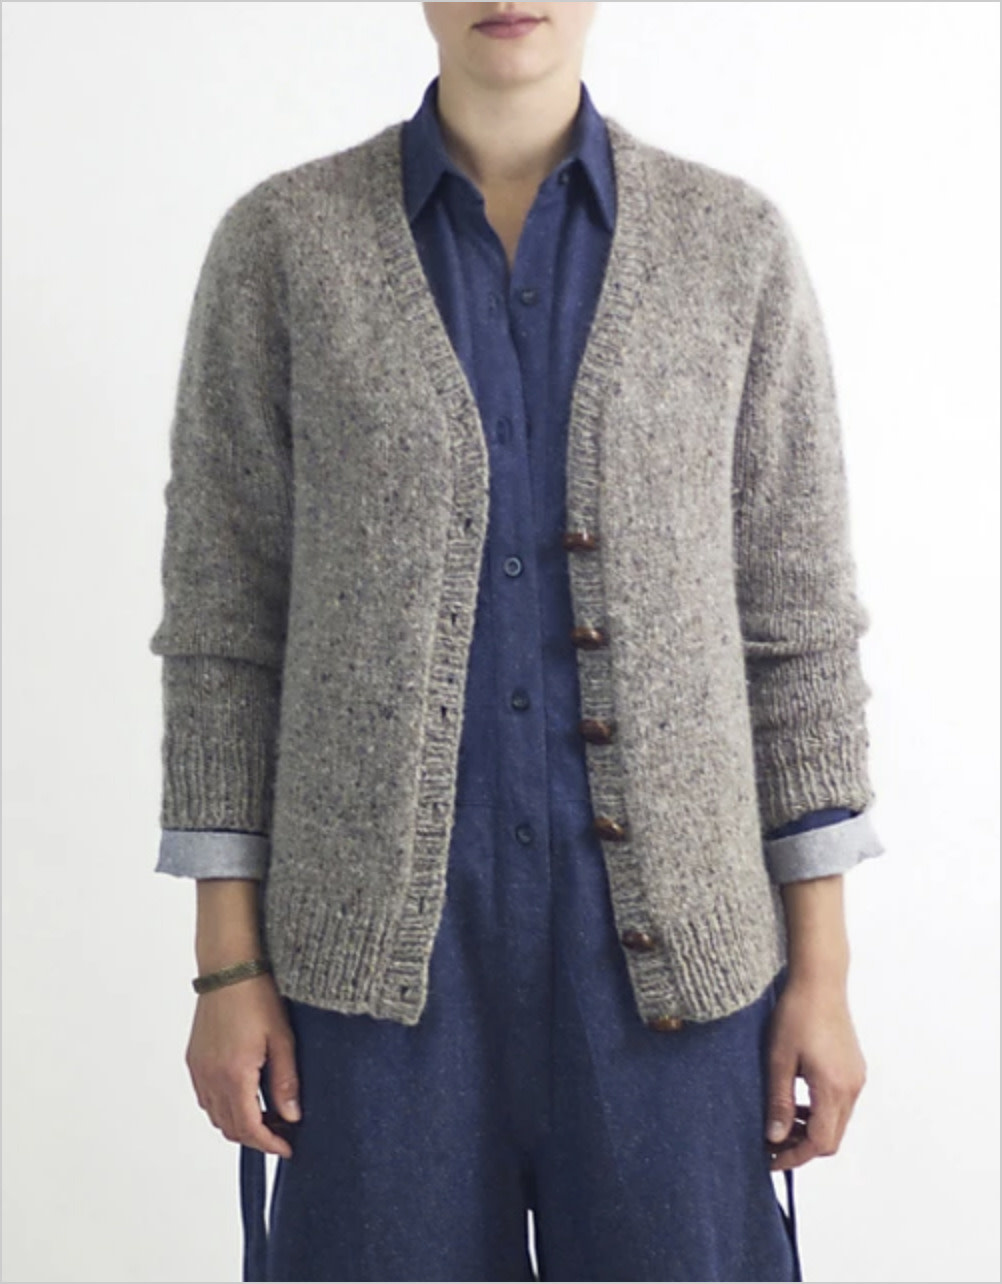 Cocoknits Cardigan Class with Kathy